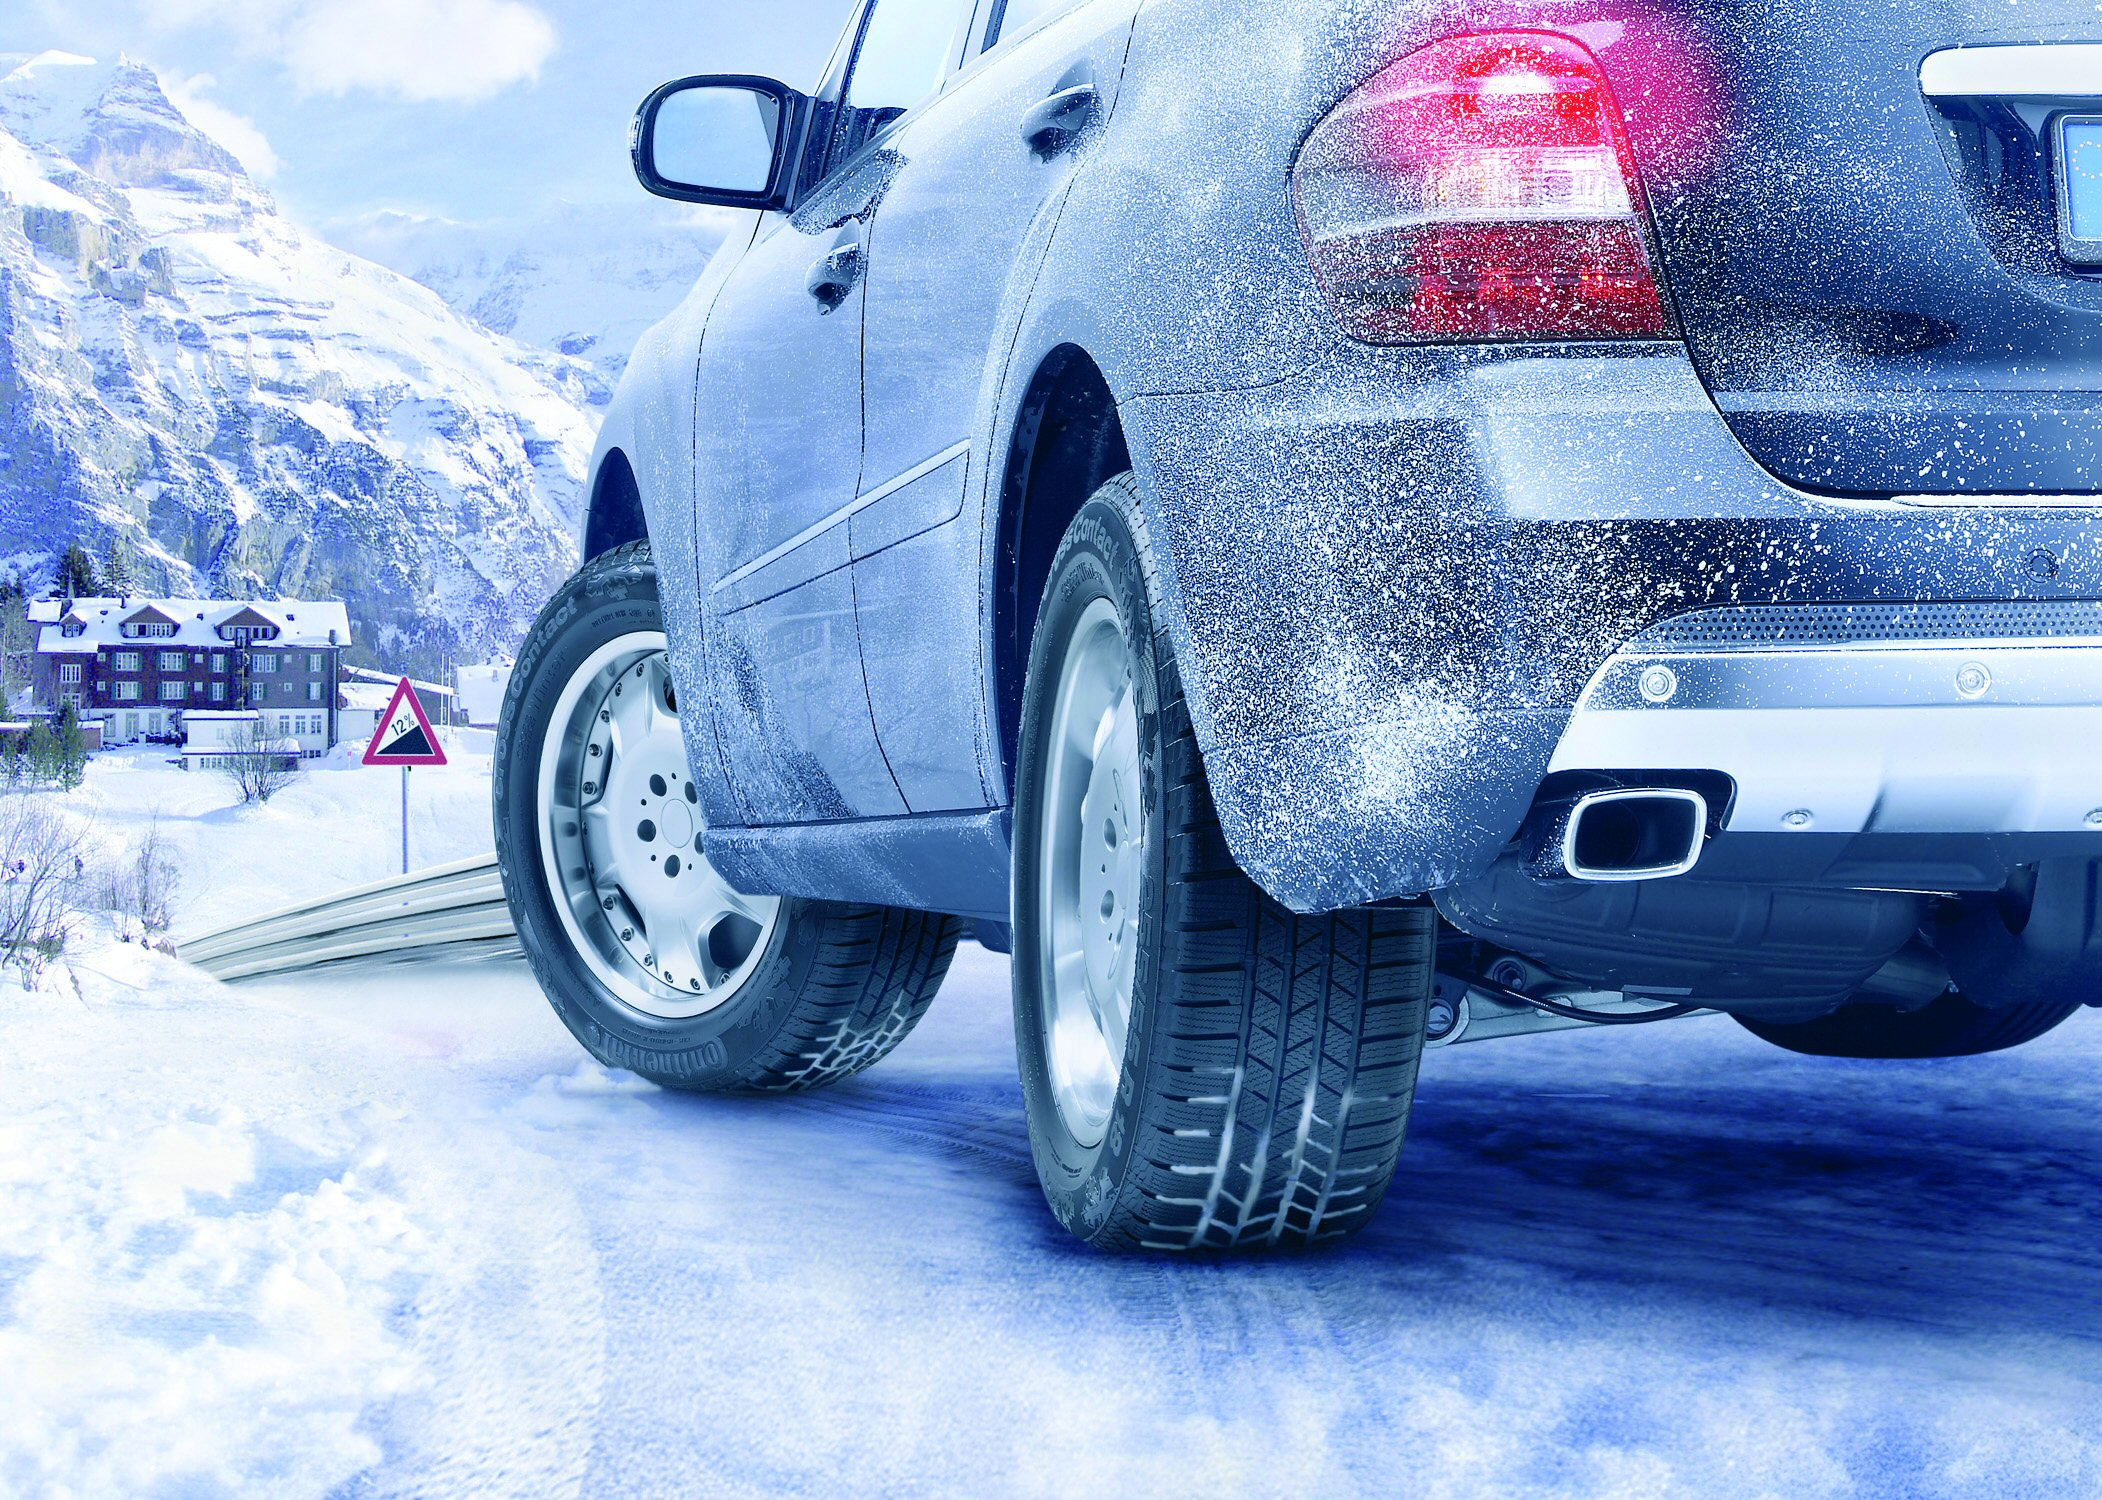 Winterizing Your Car: Winter Service: Preparing Your Car For The Colder Months